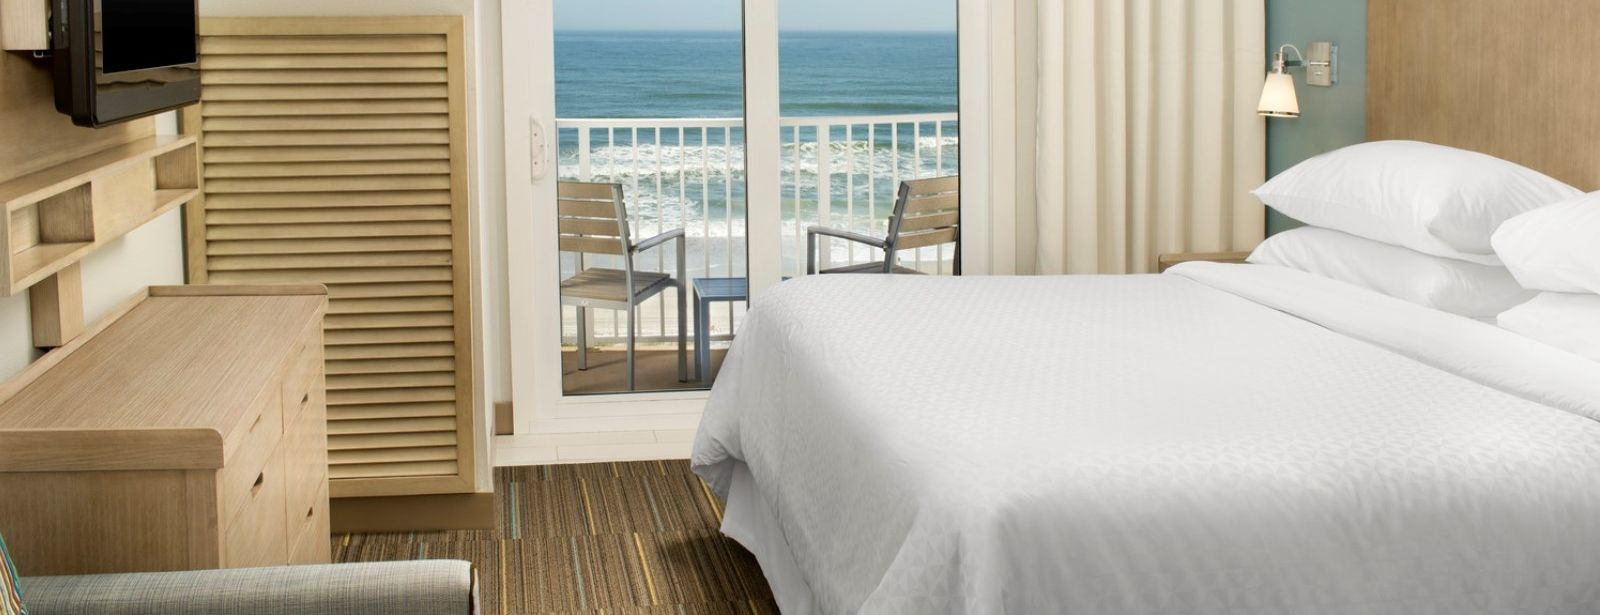 Jacksonville Beach Accommodations - Accessible Suite